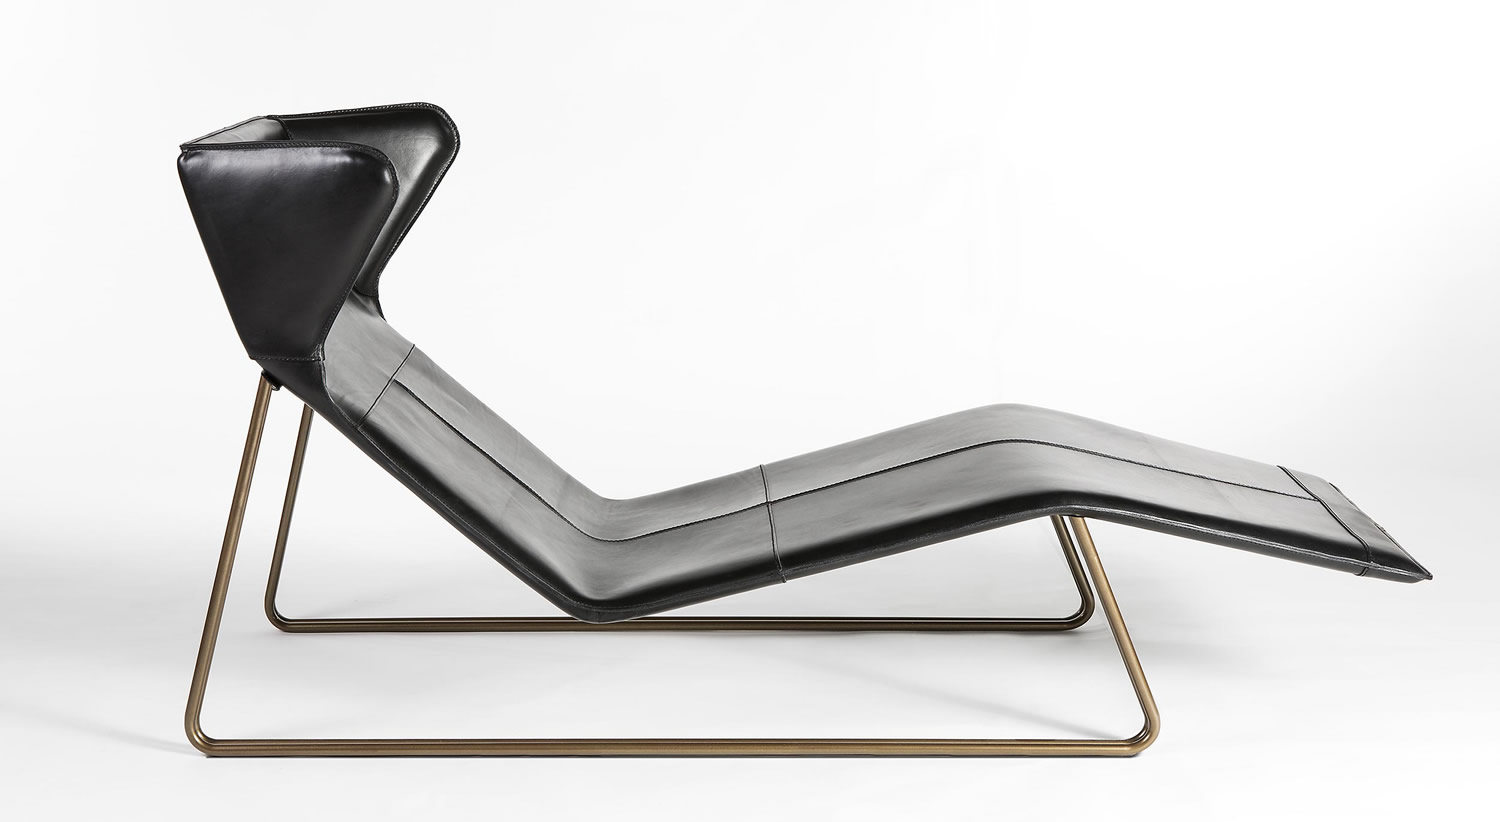 Geometrical leather chaise longue romea esedra suites modern classic furniture - Modern leather chaise longue ...